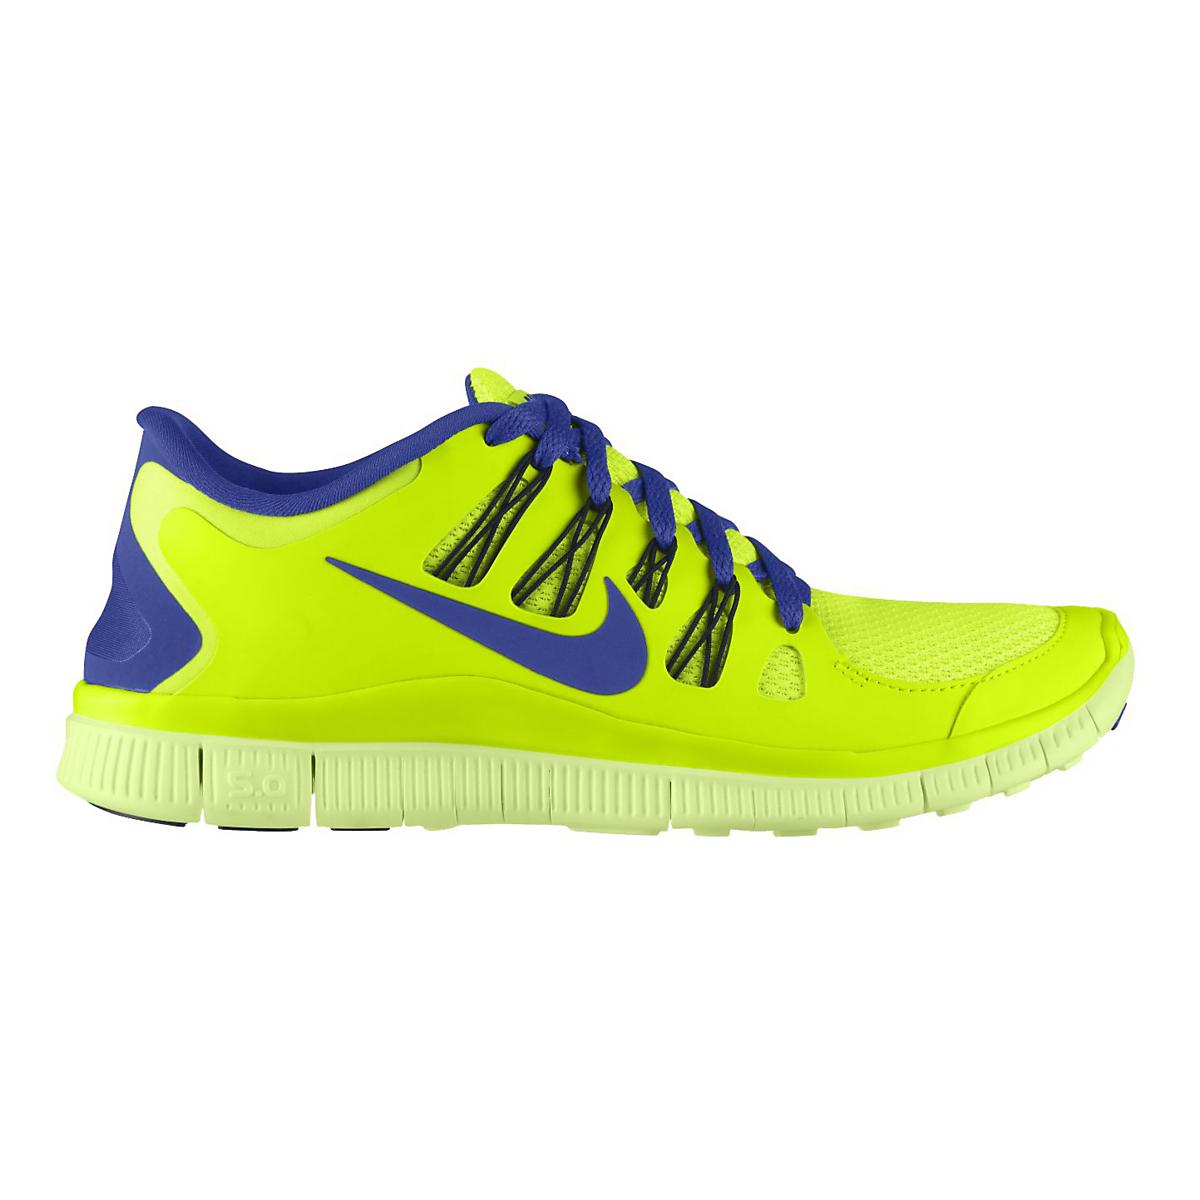 new product ff3f9 61063 Mens Nike Free 5.0+ Running Shoe at Road Runner Sports